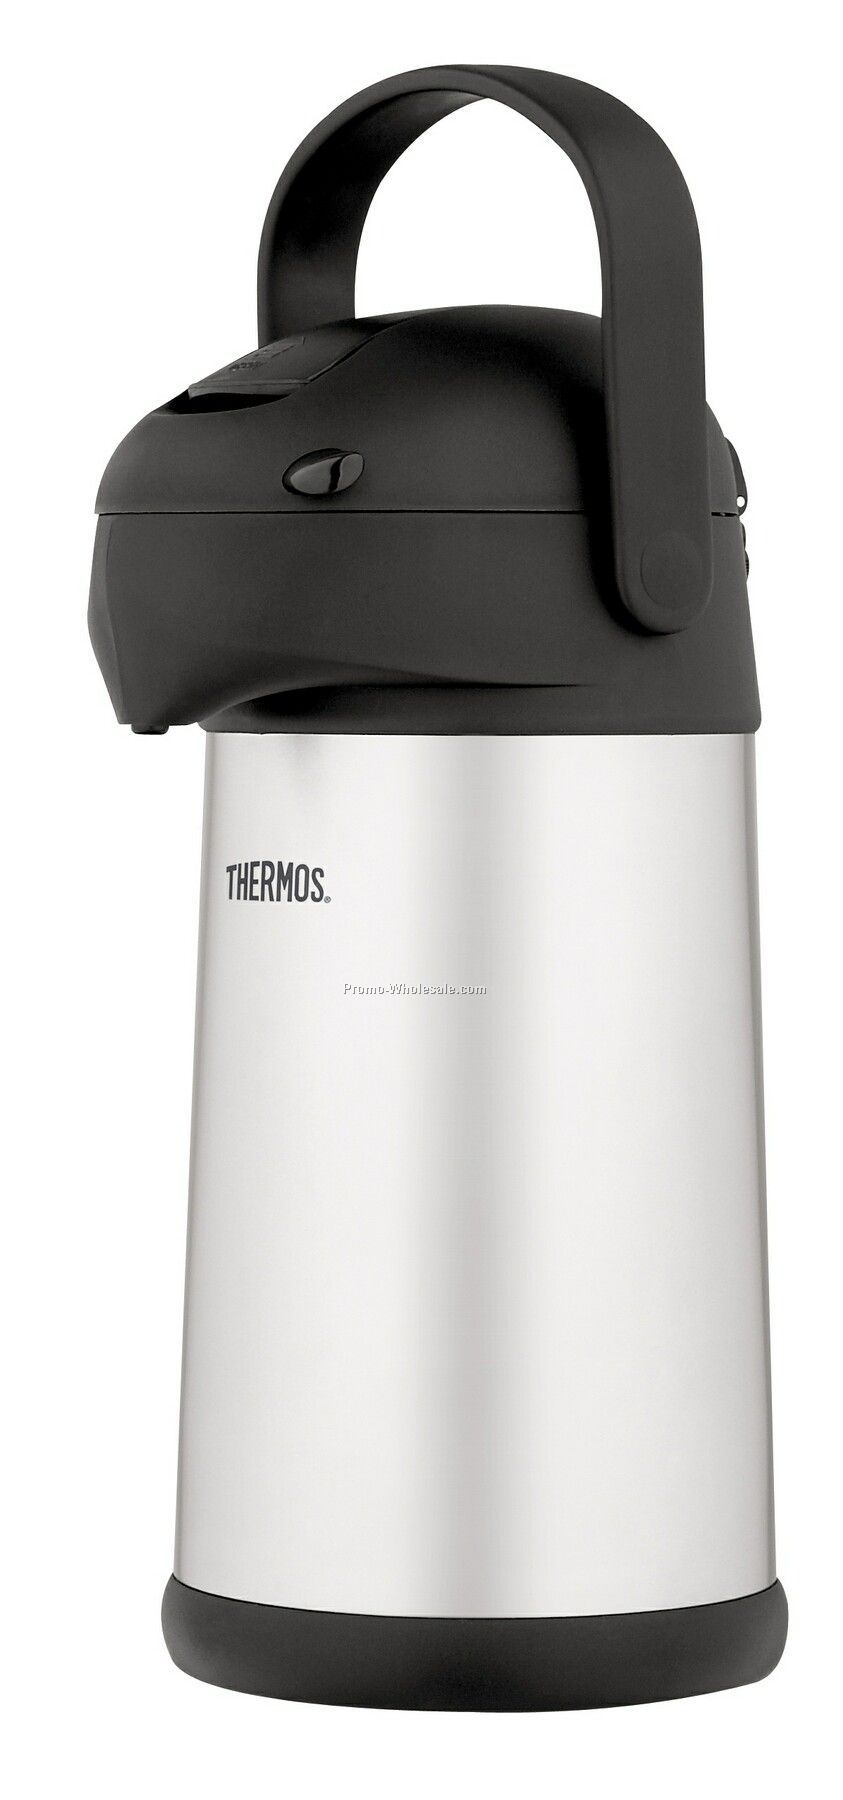 Thermos - 08 photo